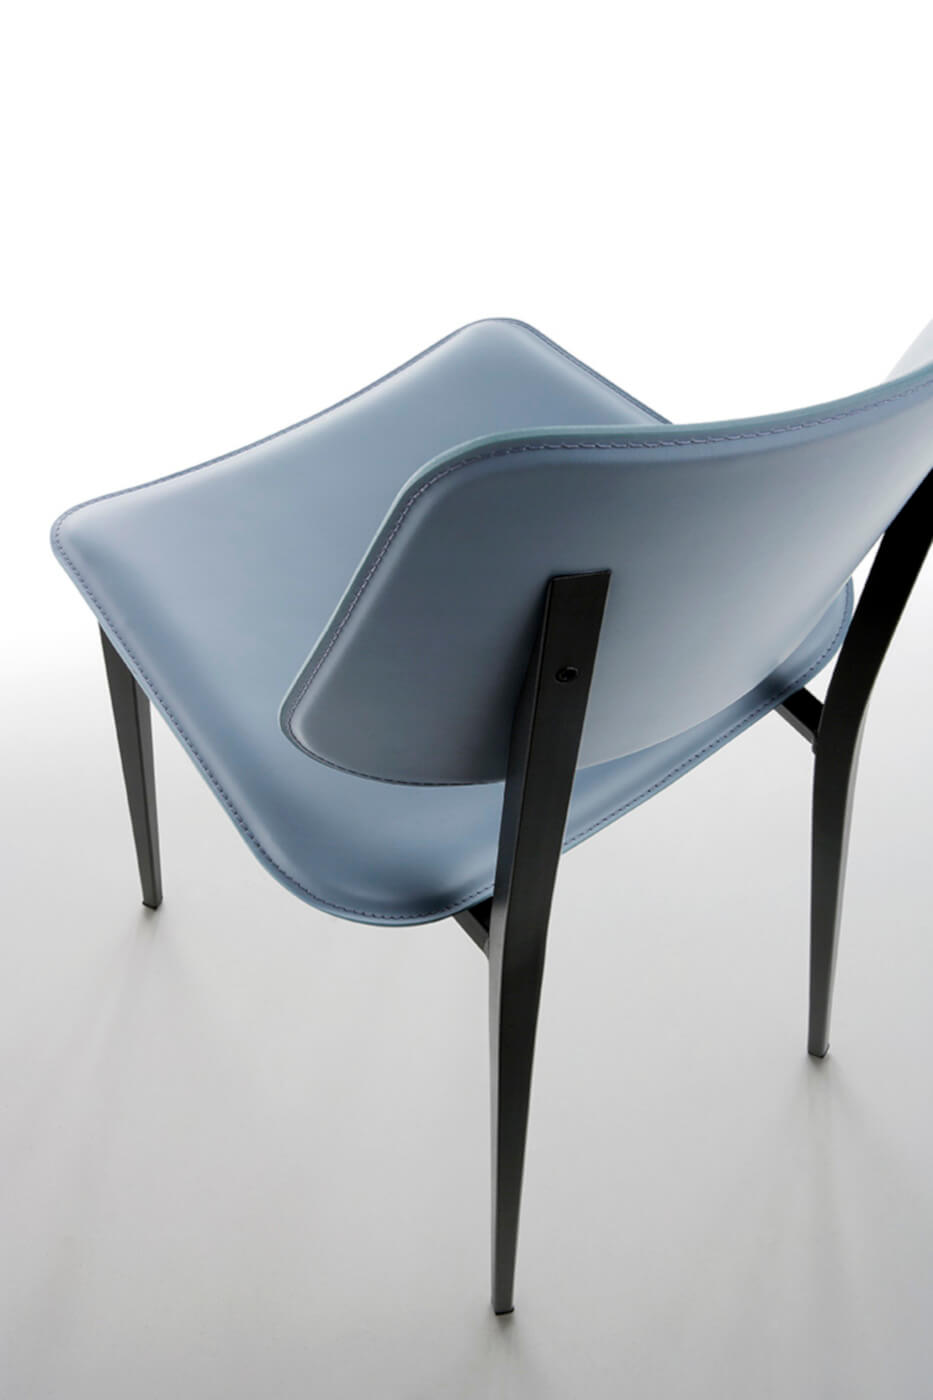 Detail of the Joe back chair in light blue hide and metal base